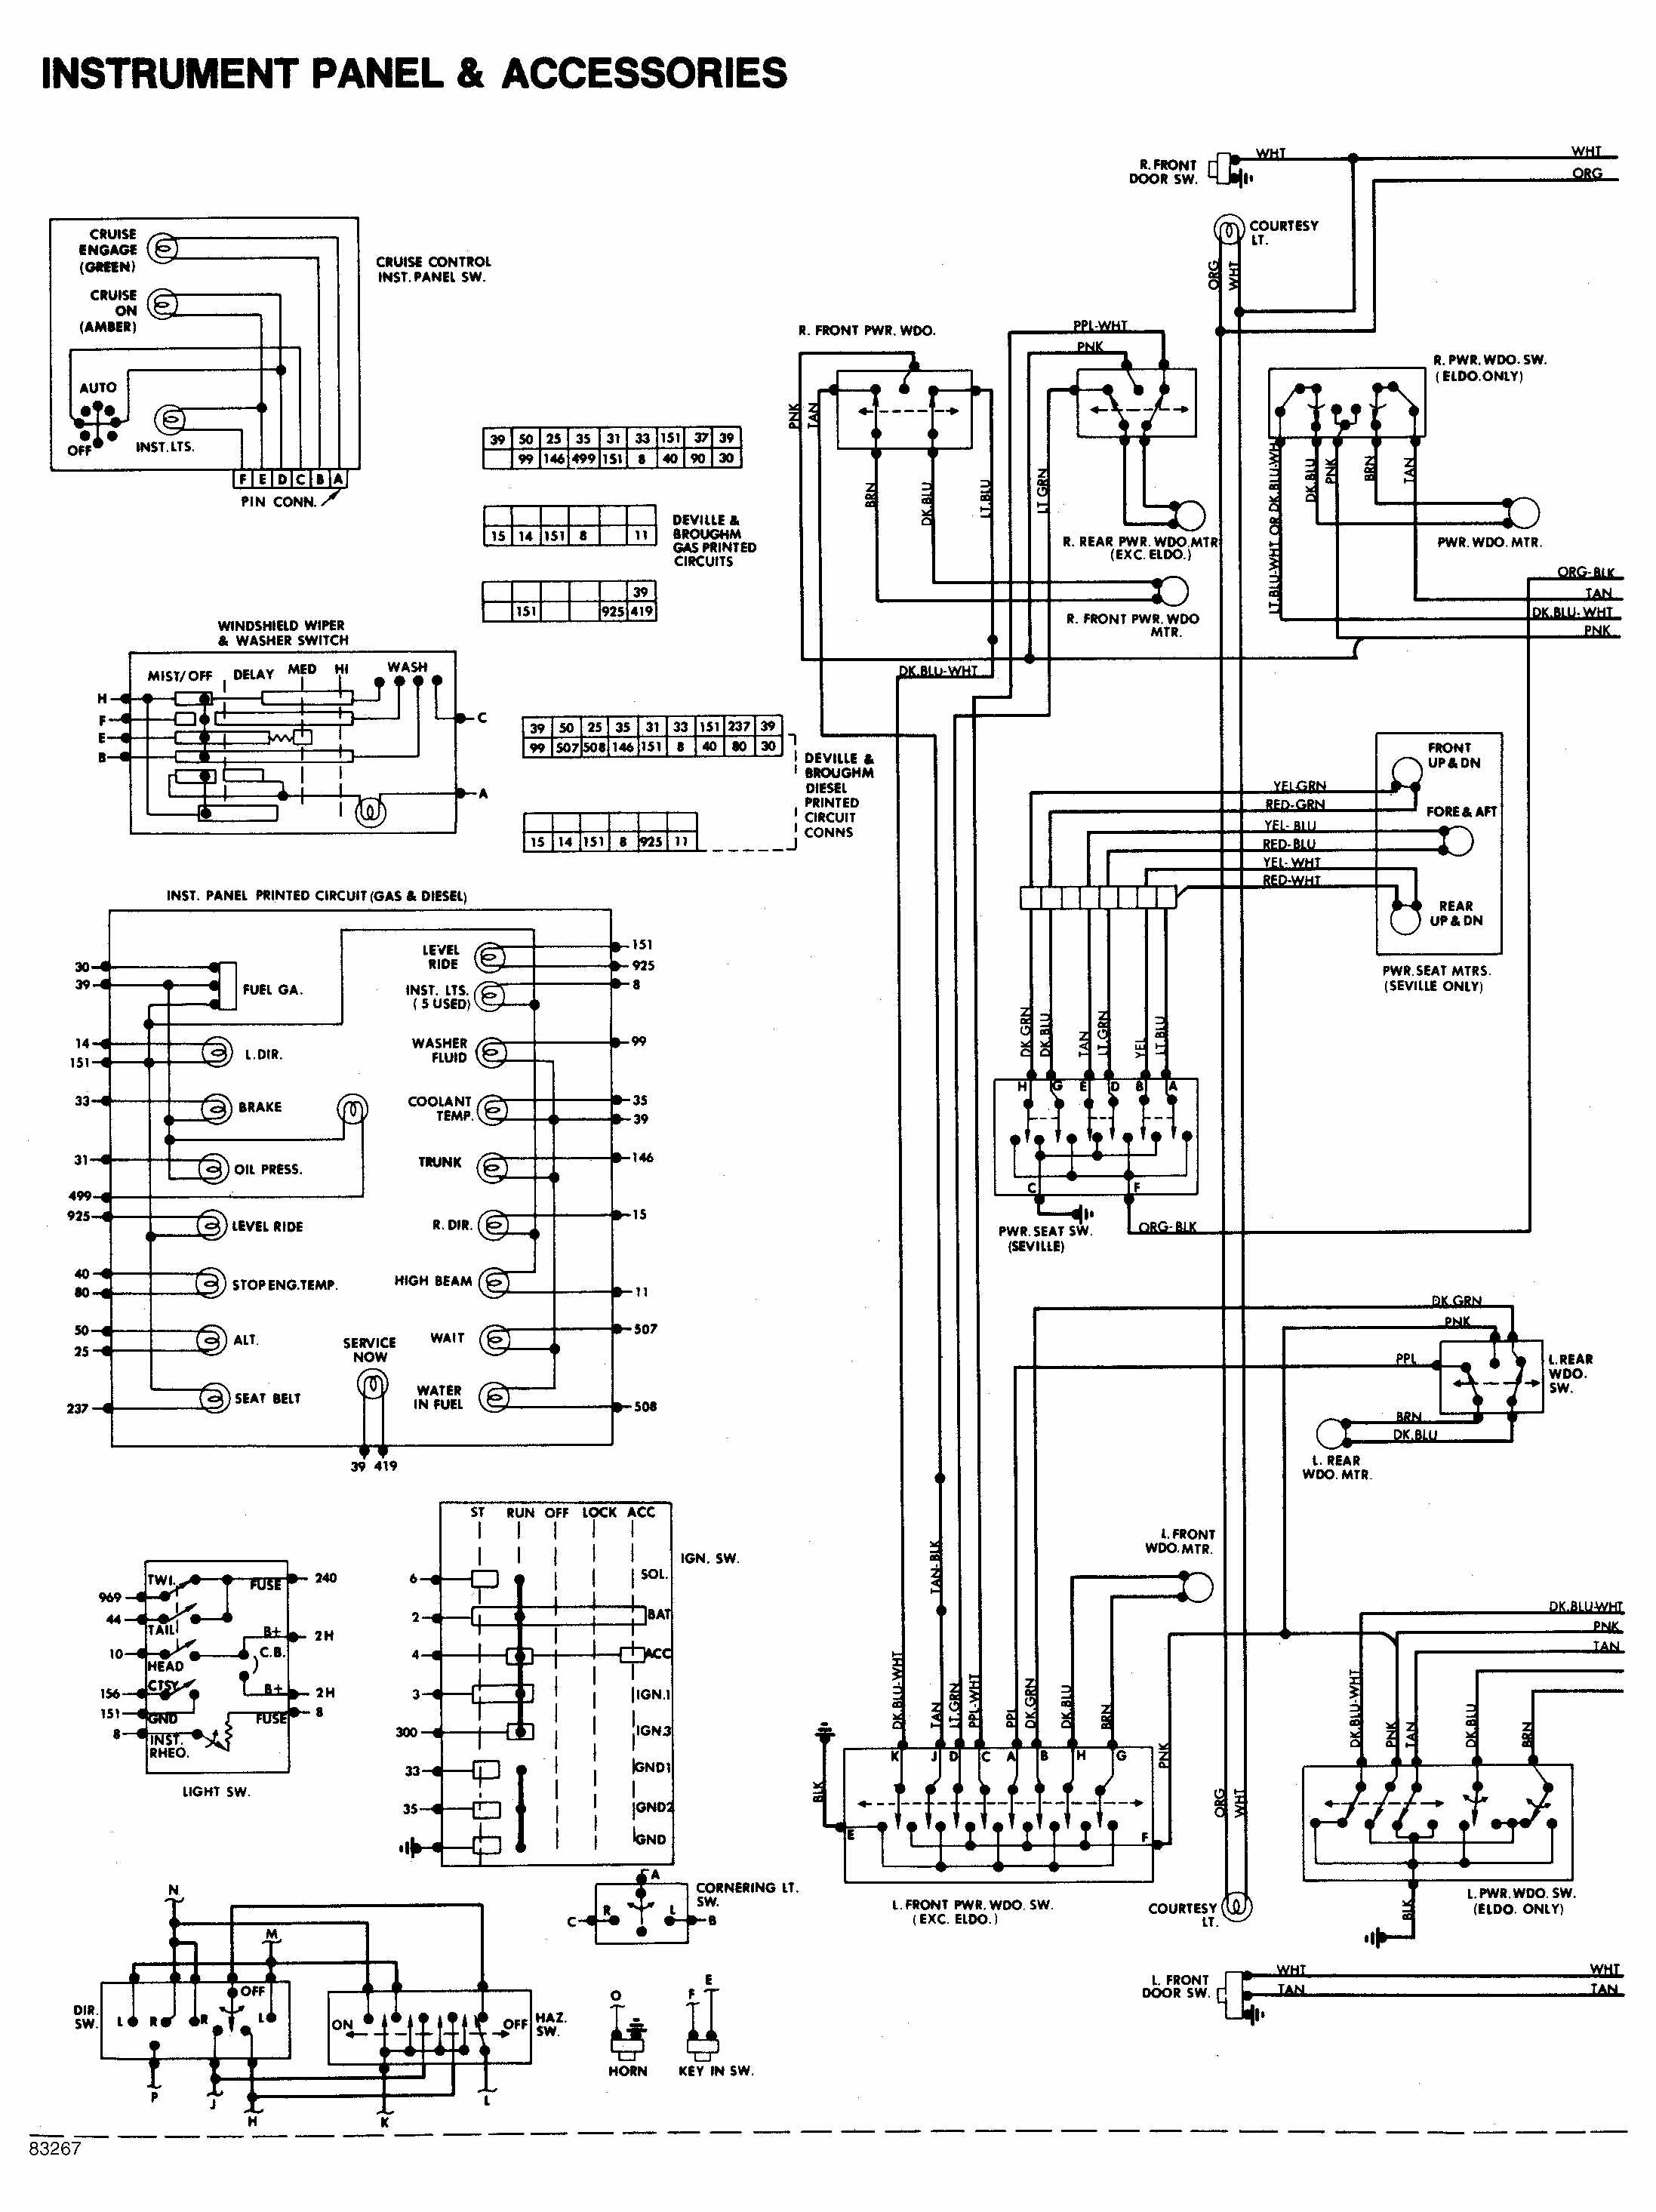 chevy diagrams 1984 cadillac deville instrument panel and accessories wiring diagram